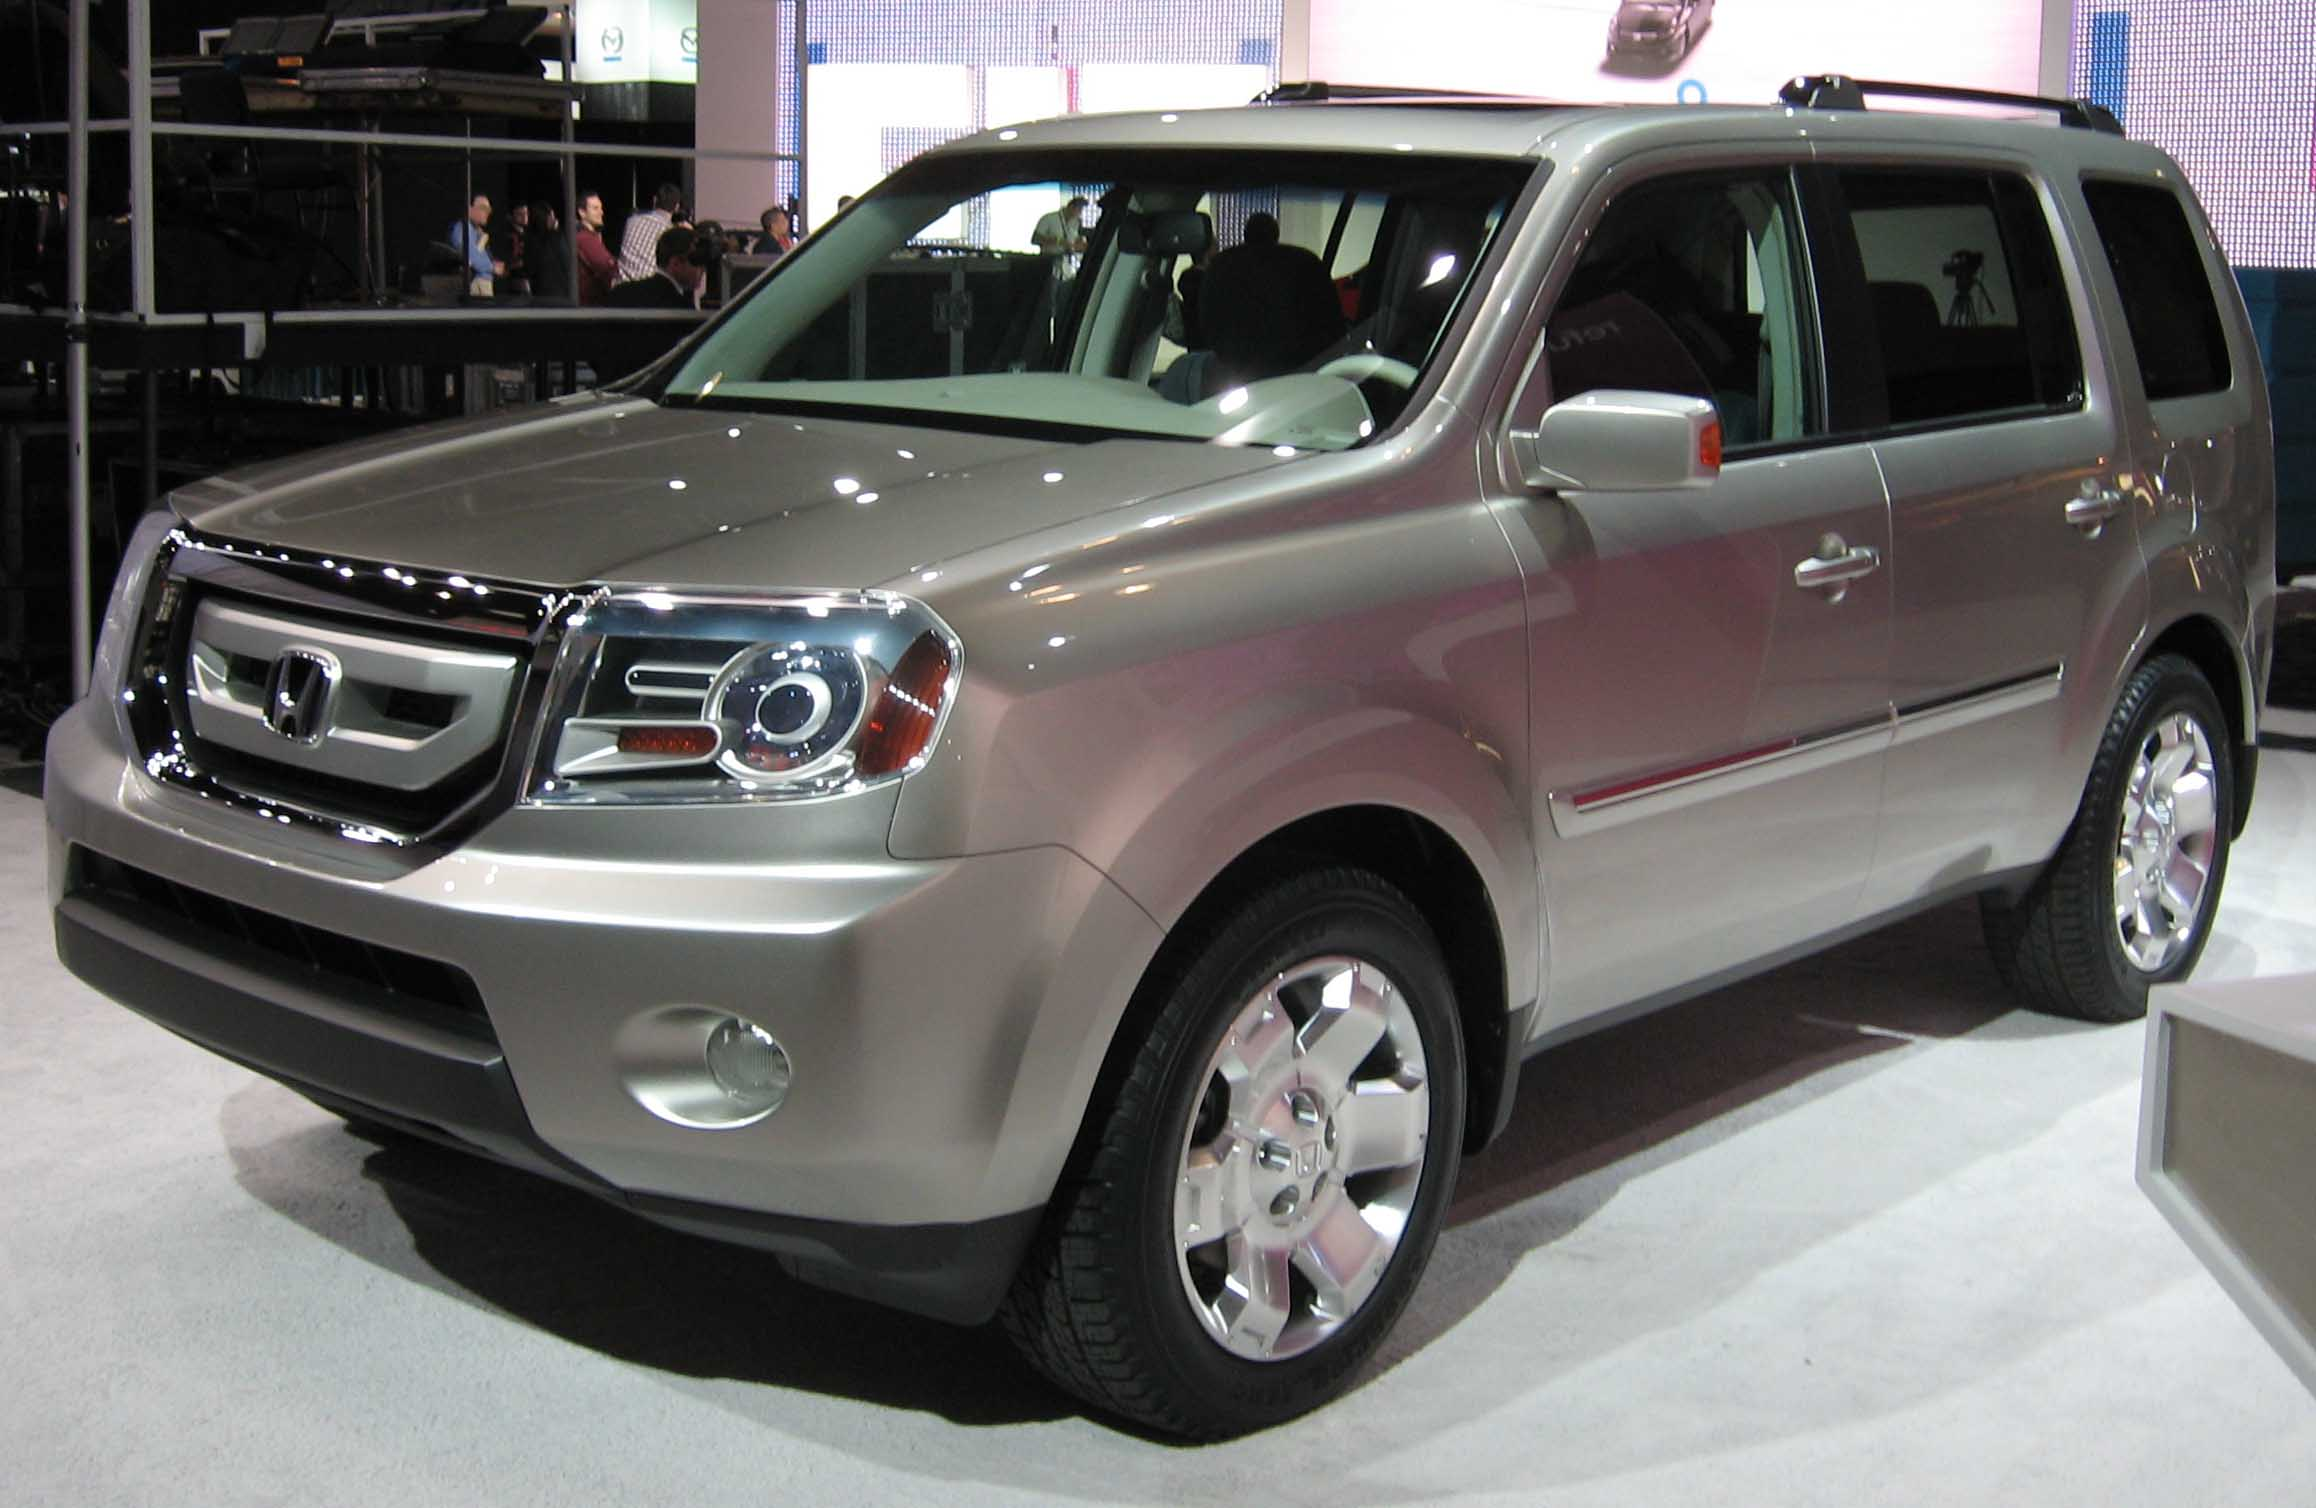 2009 Honda Pilot ii - pictures, information and specs ...